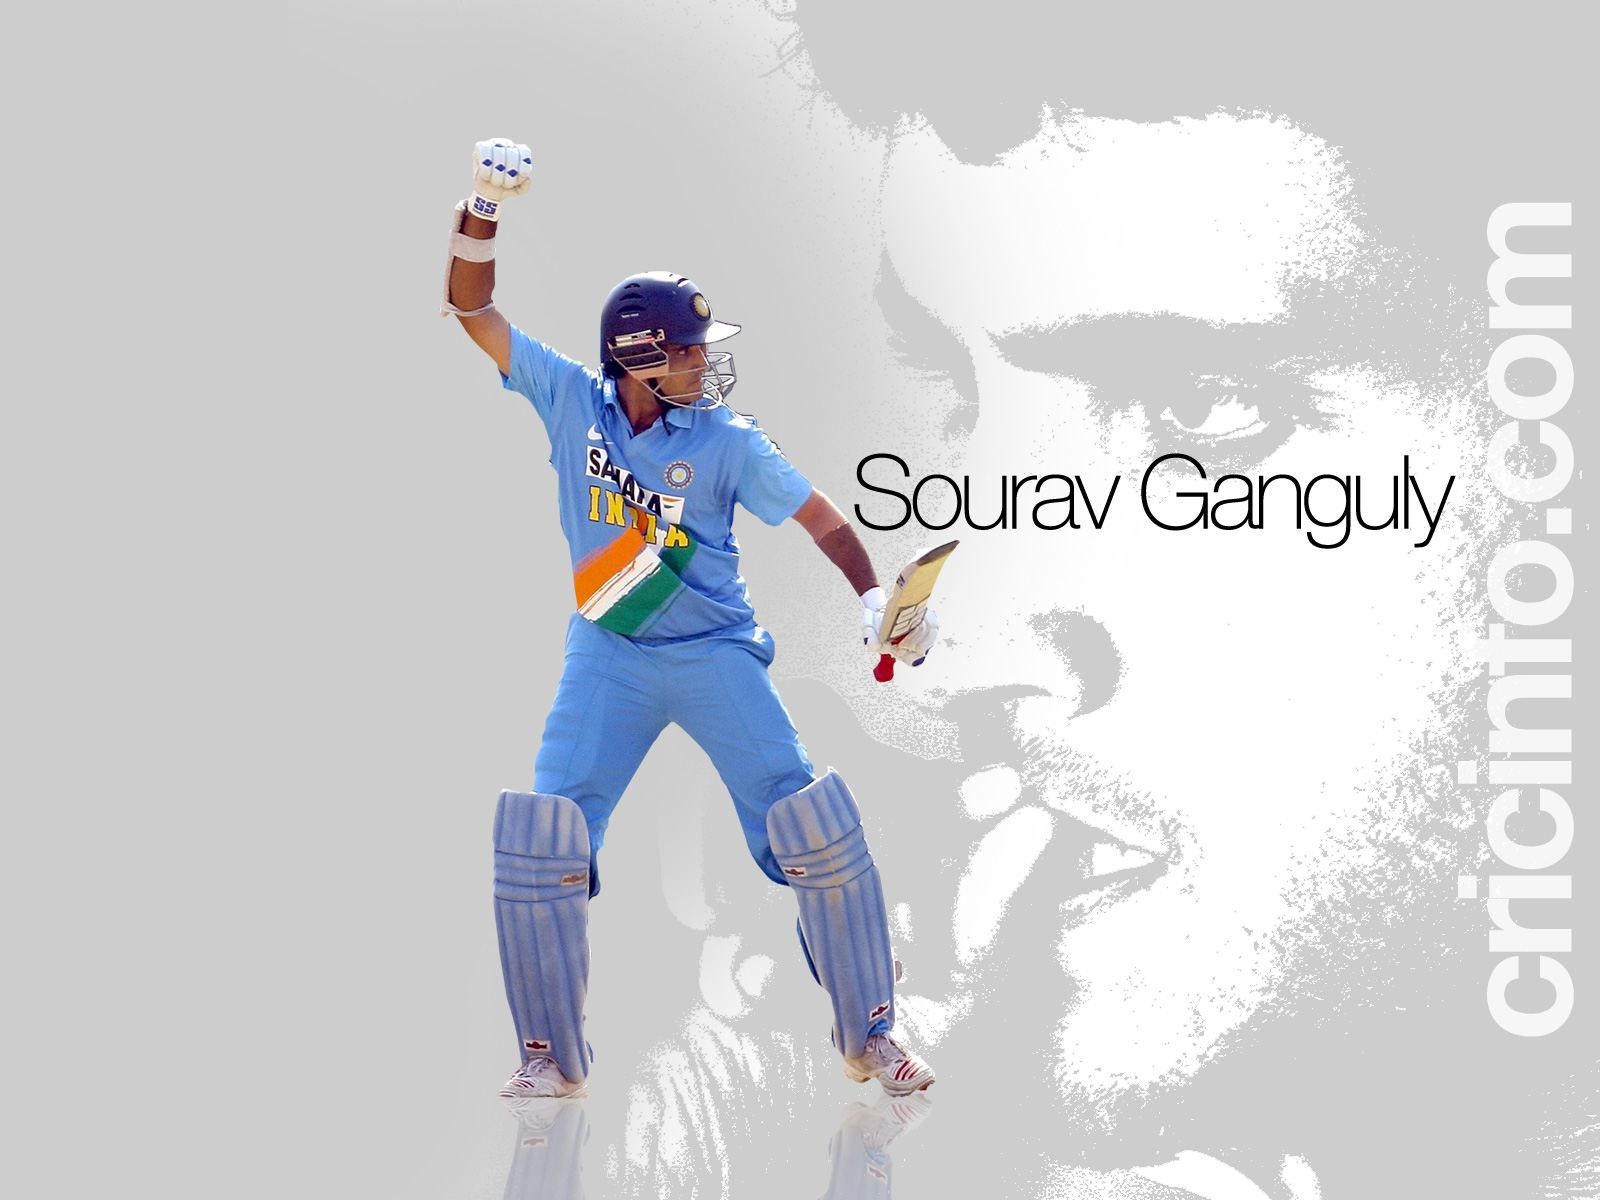 Sourav ganguly hd wallpapers nvjuhfo Image collections